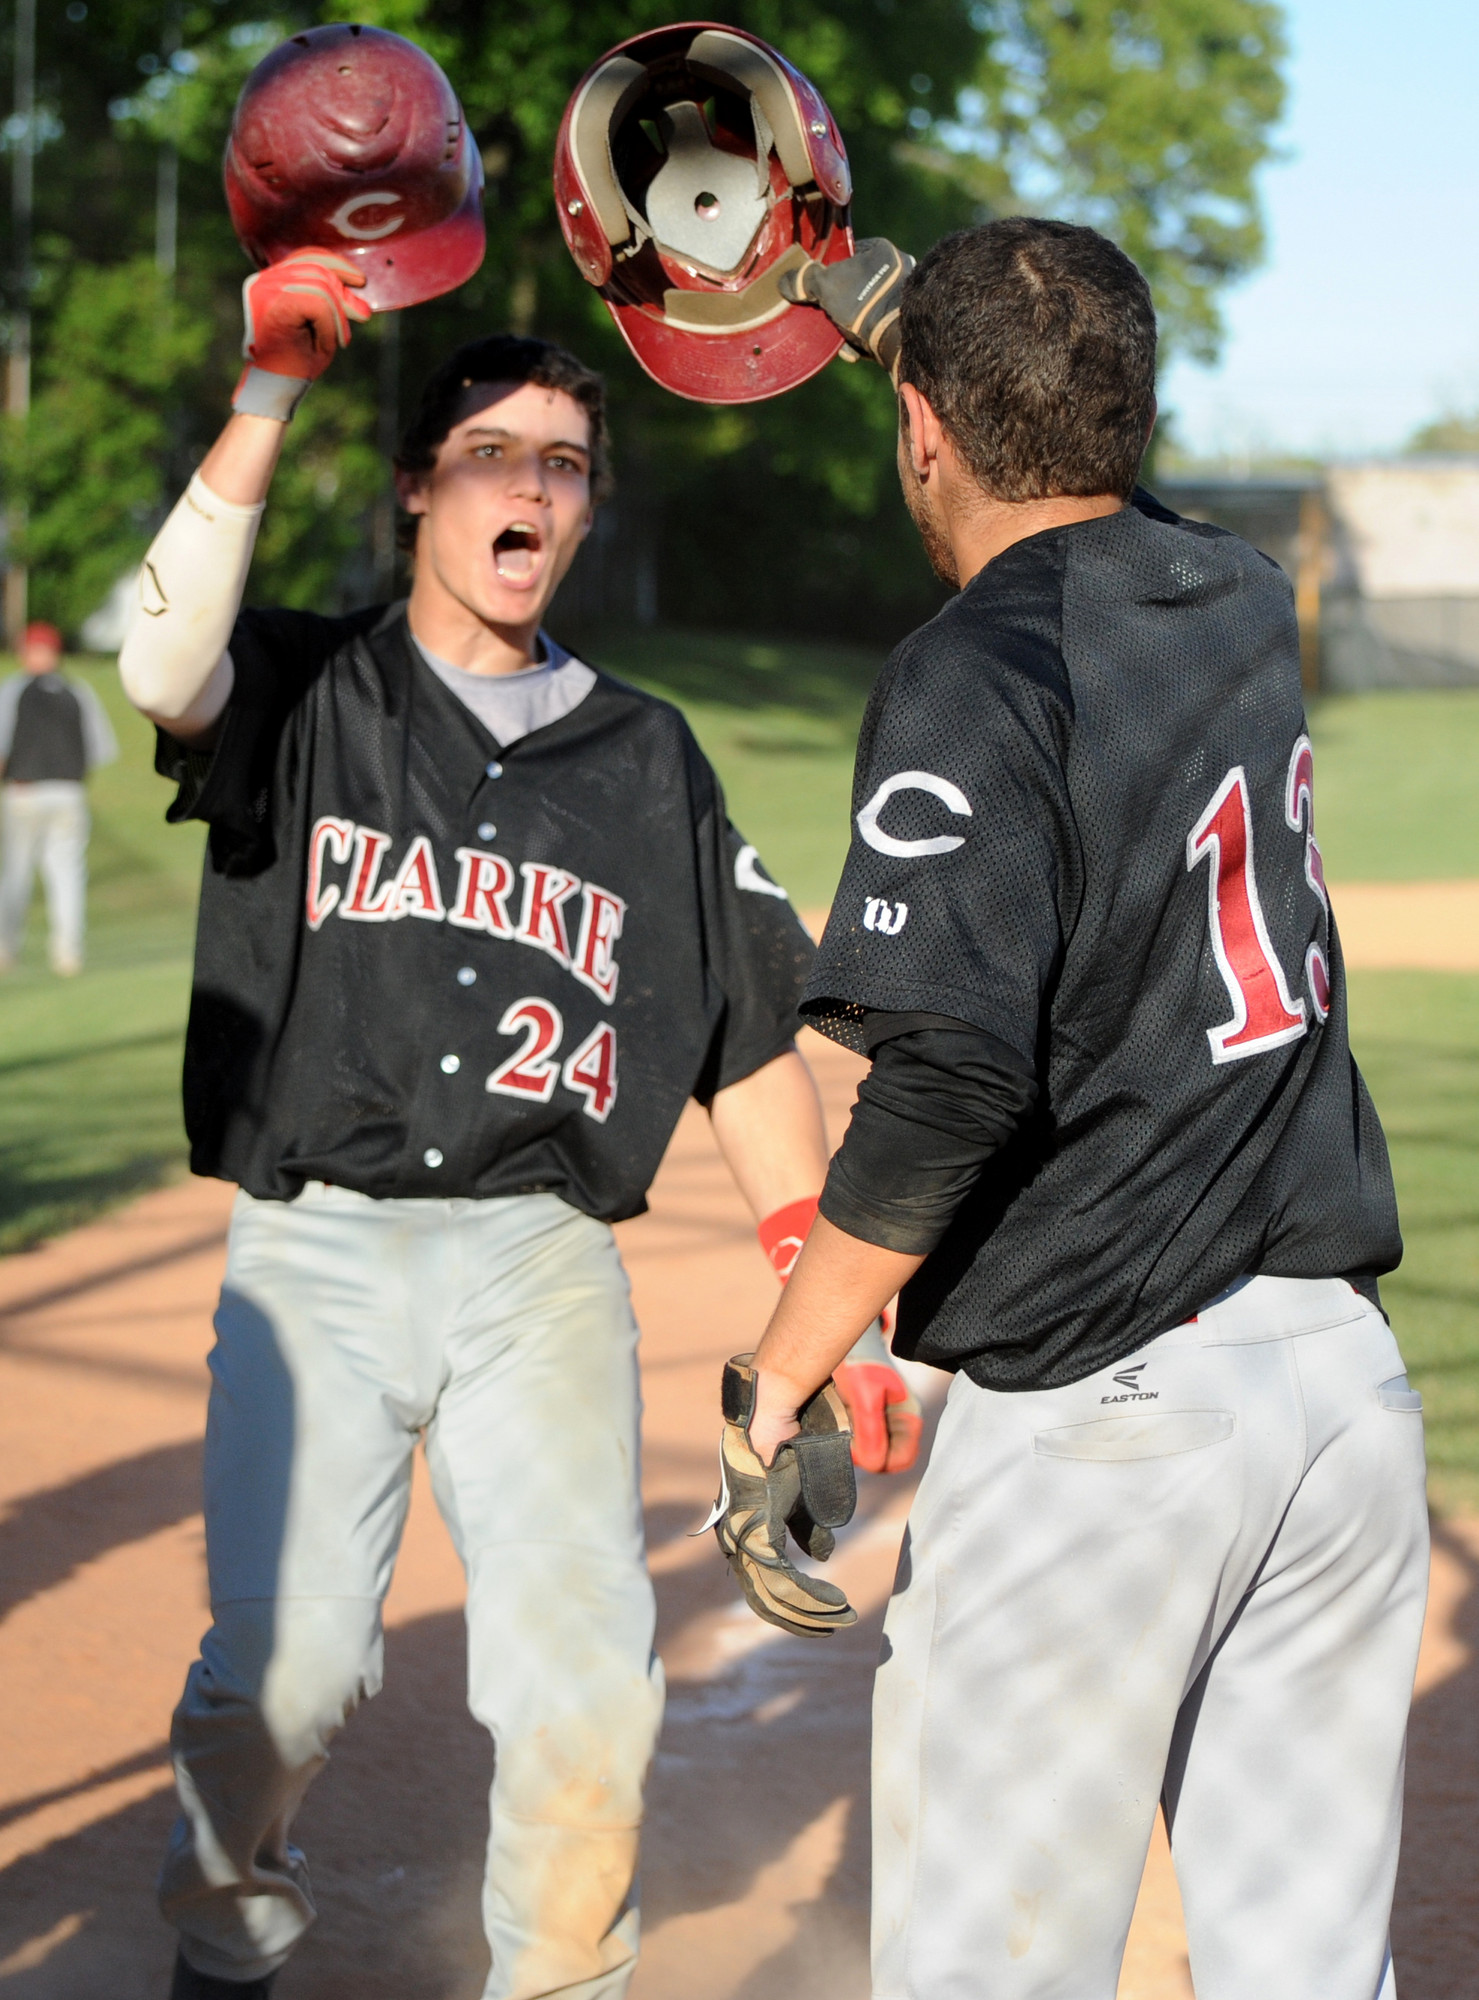 Clarke's John Fogarty, left, celebrated with Jayson Garcia after his second homer in Game 2 of last week's Class A playoff series win over Valley Stream North.